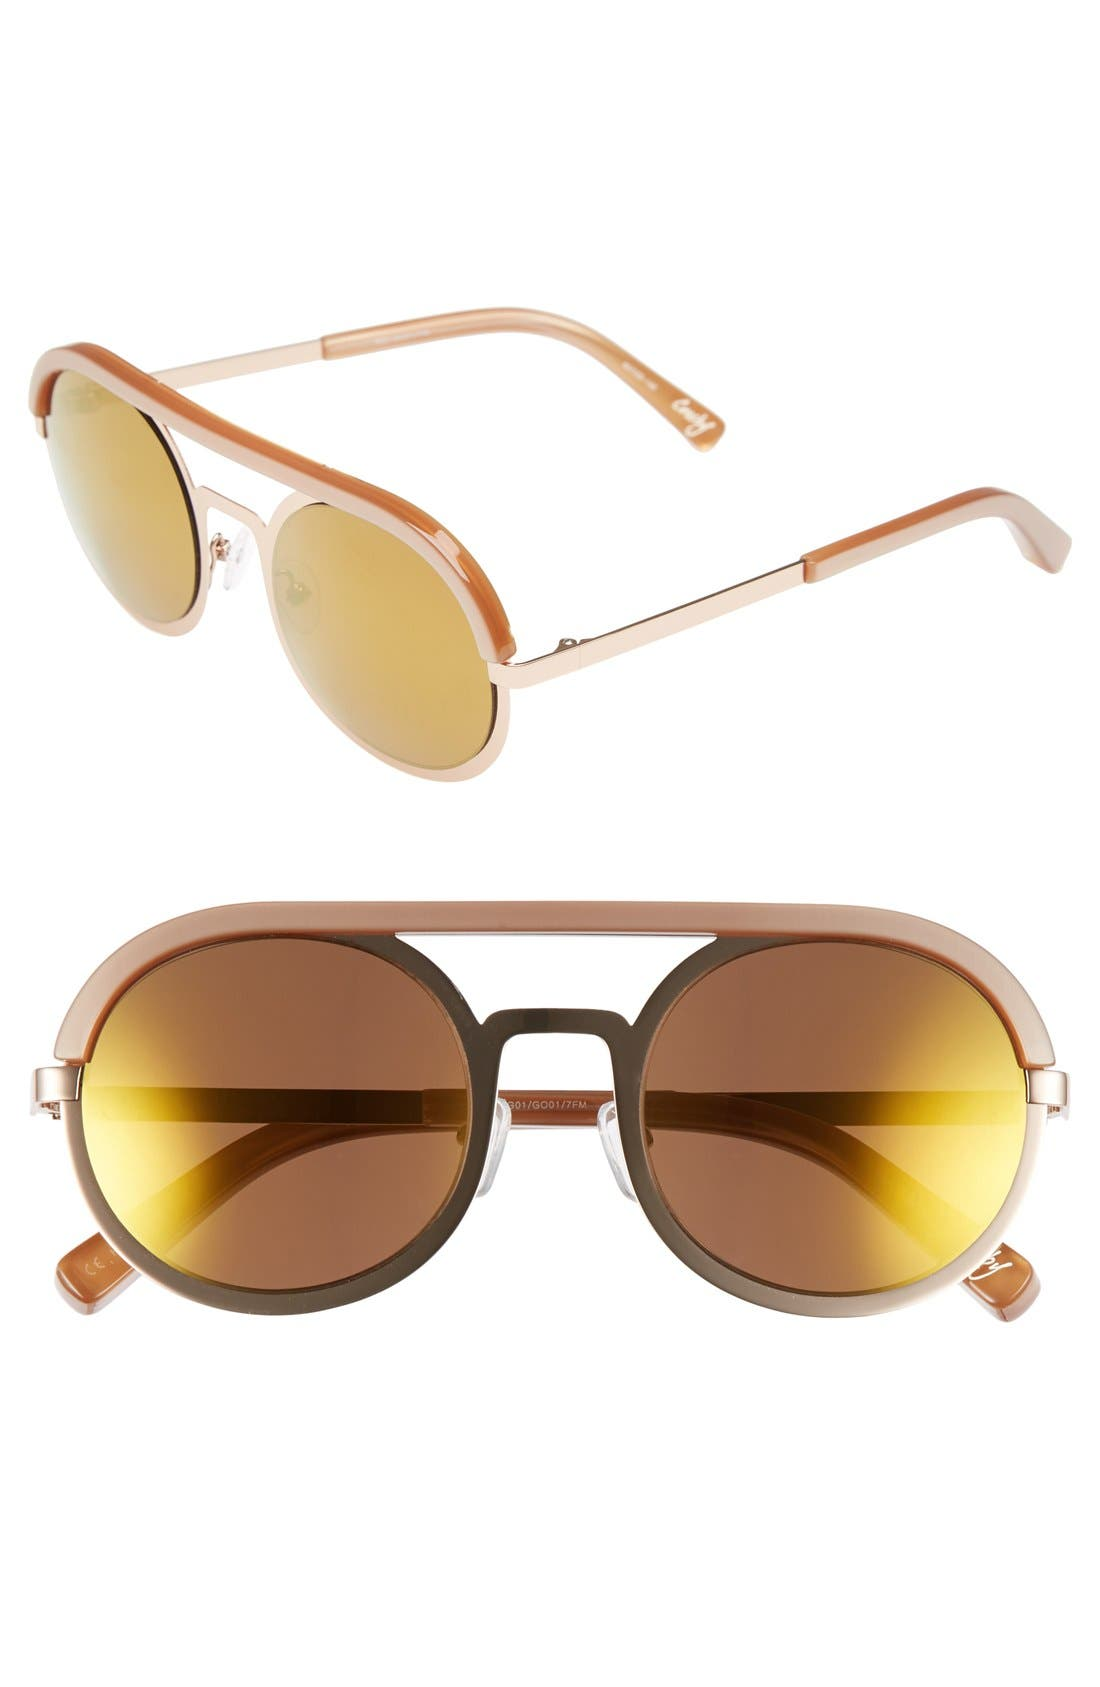 Main Image - Elizabeth and James 'Crosby' 50mm Round Sunglasses